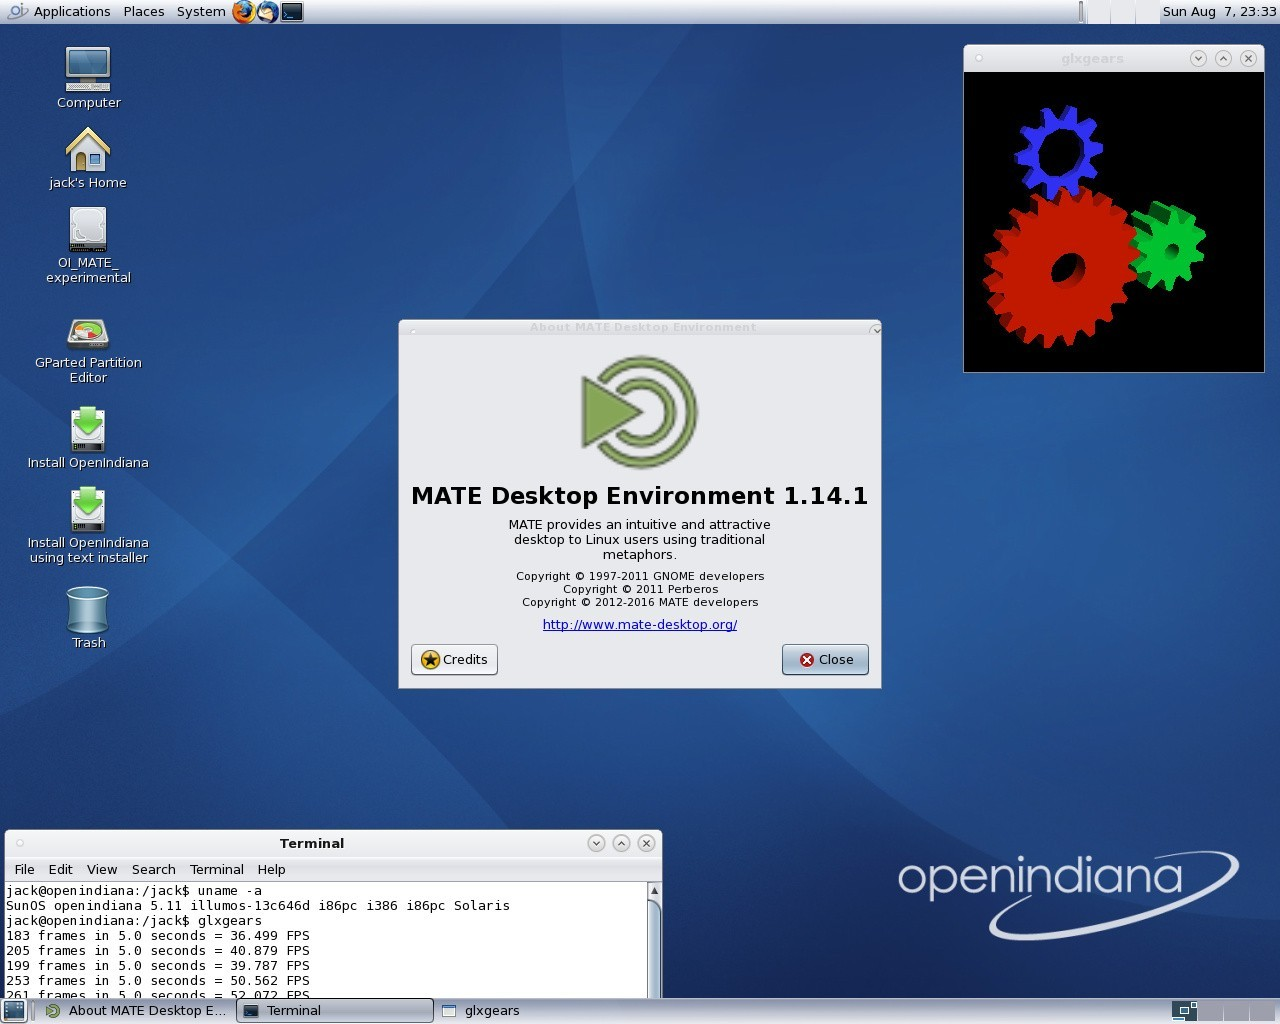 OpenIndiana 2016 10 Unix OS Migrates to FreeBSD Loader, Adds MATE